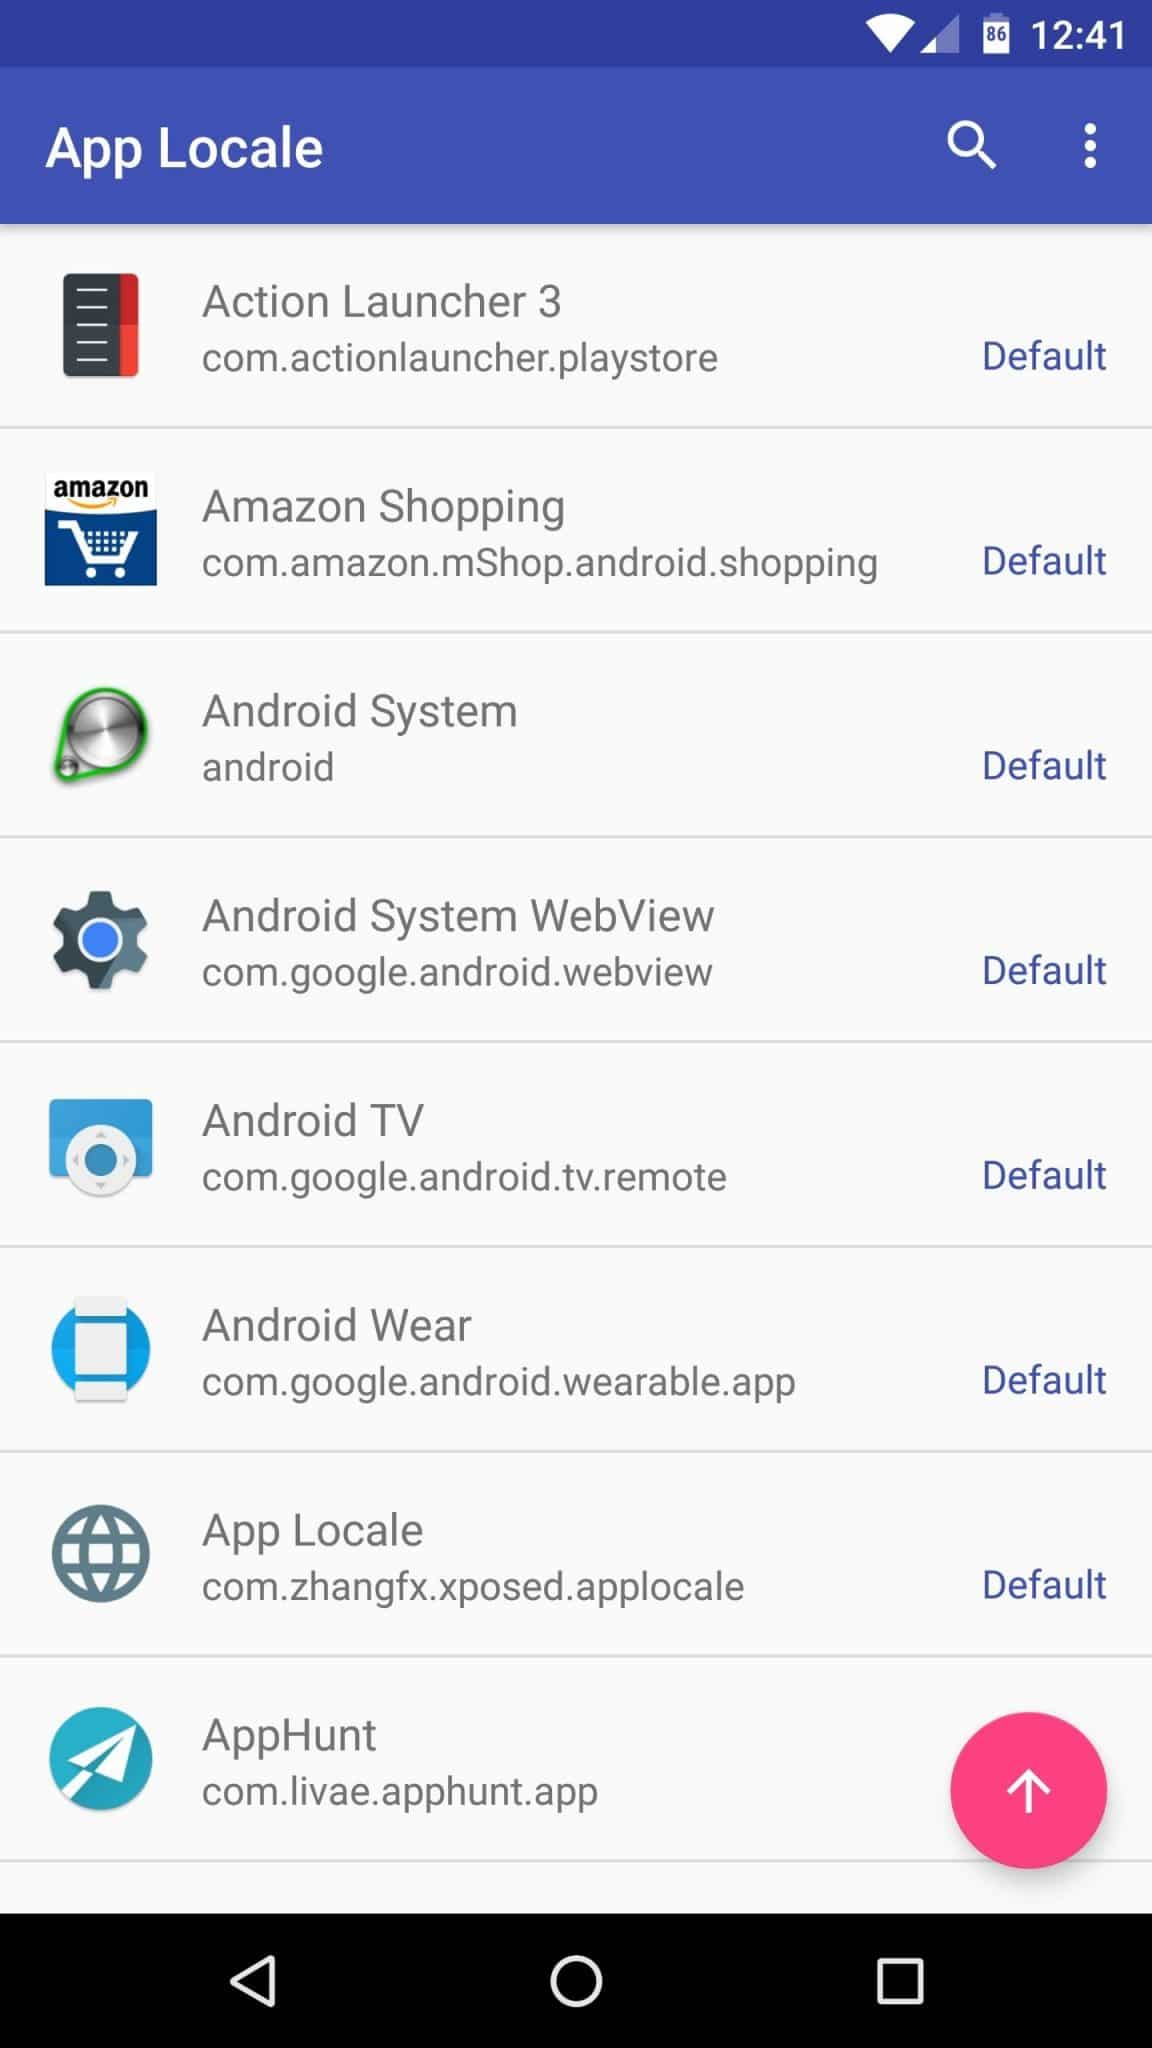 List of apps installed on your device